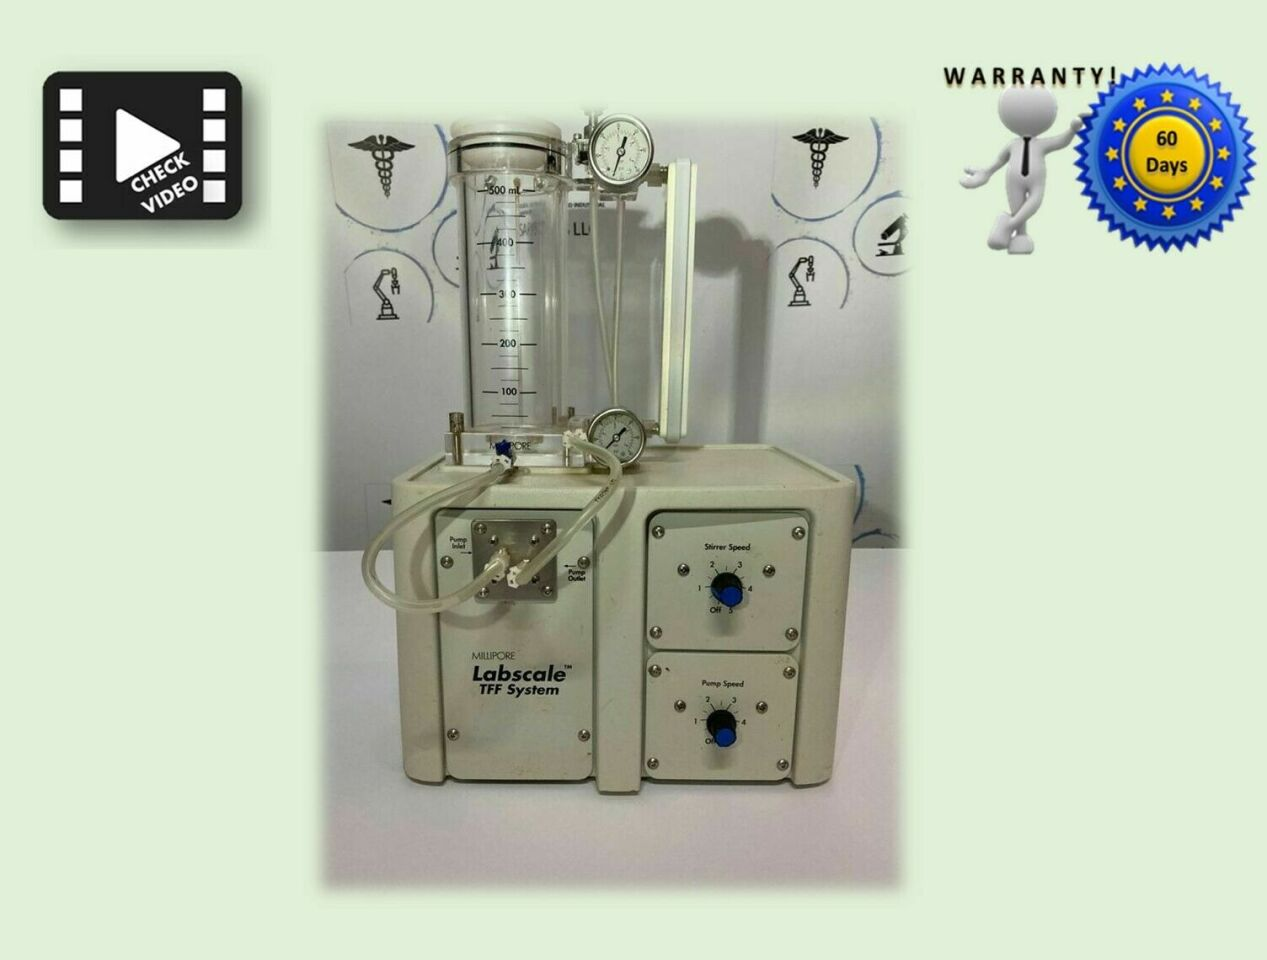 MILLIPORE LabScale 29751 TFF System